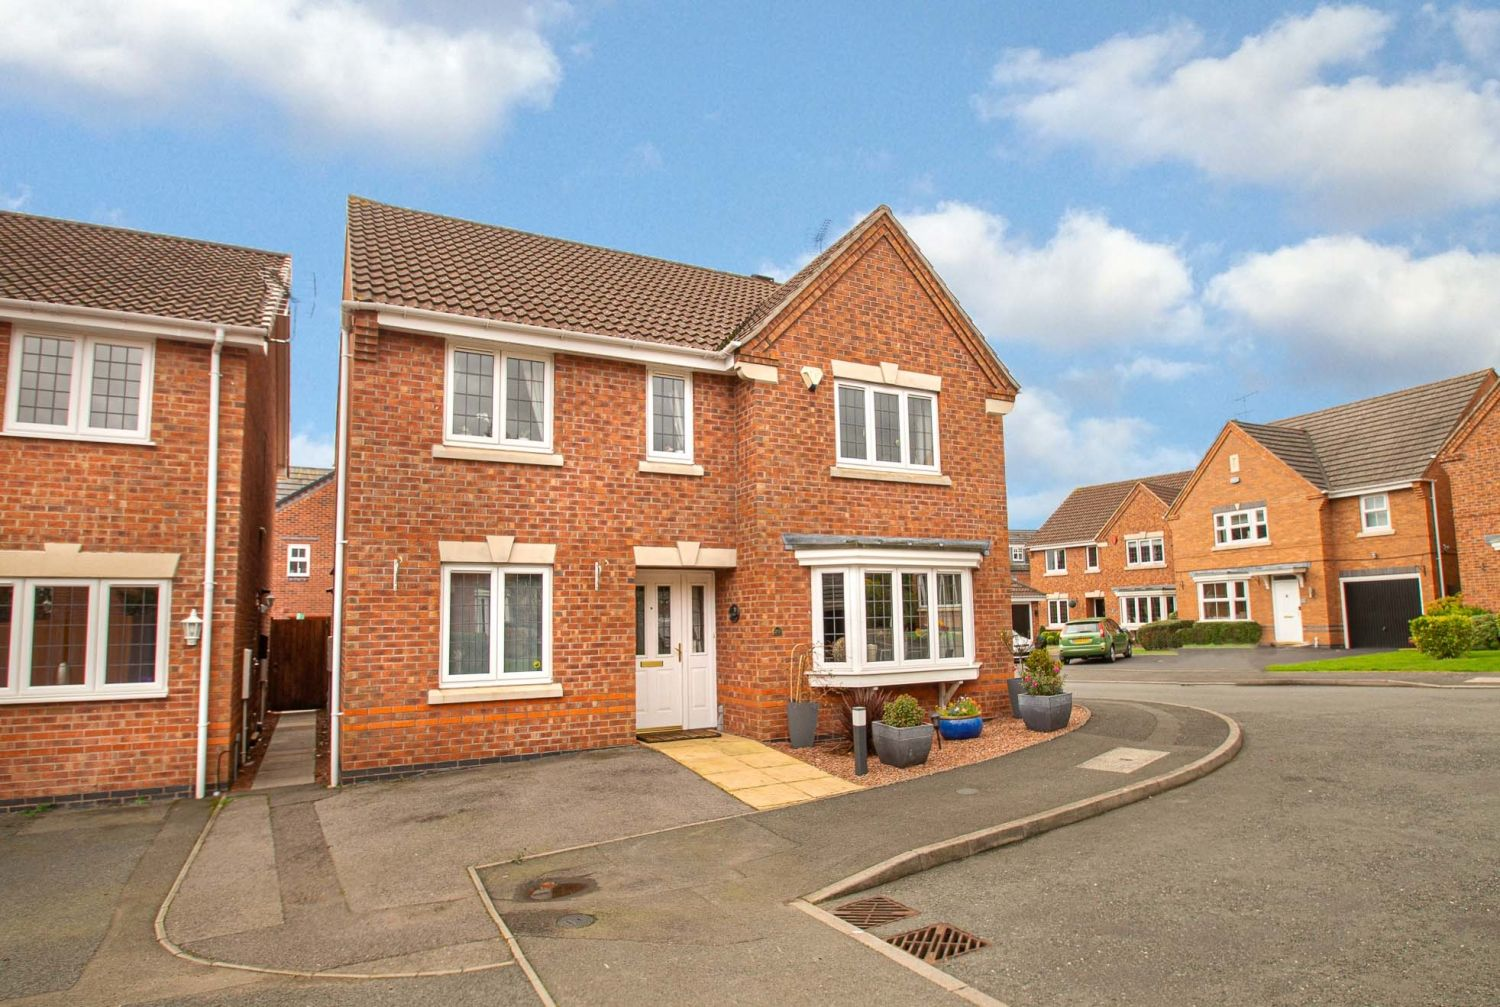 4 bed detached for sale in Harris Close, Greenlands 1